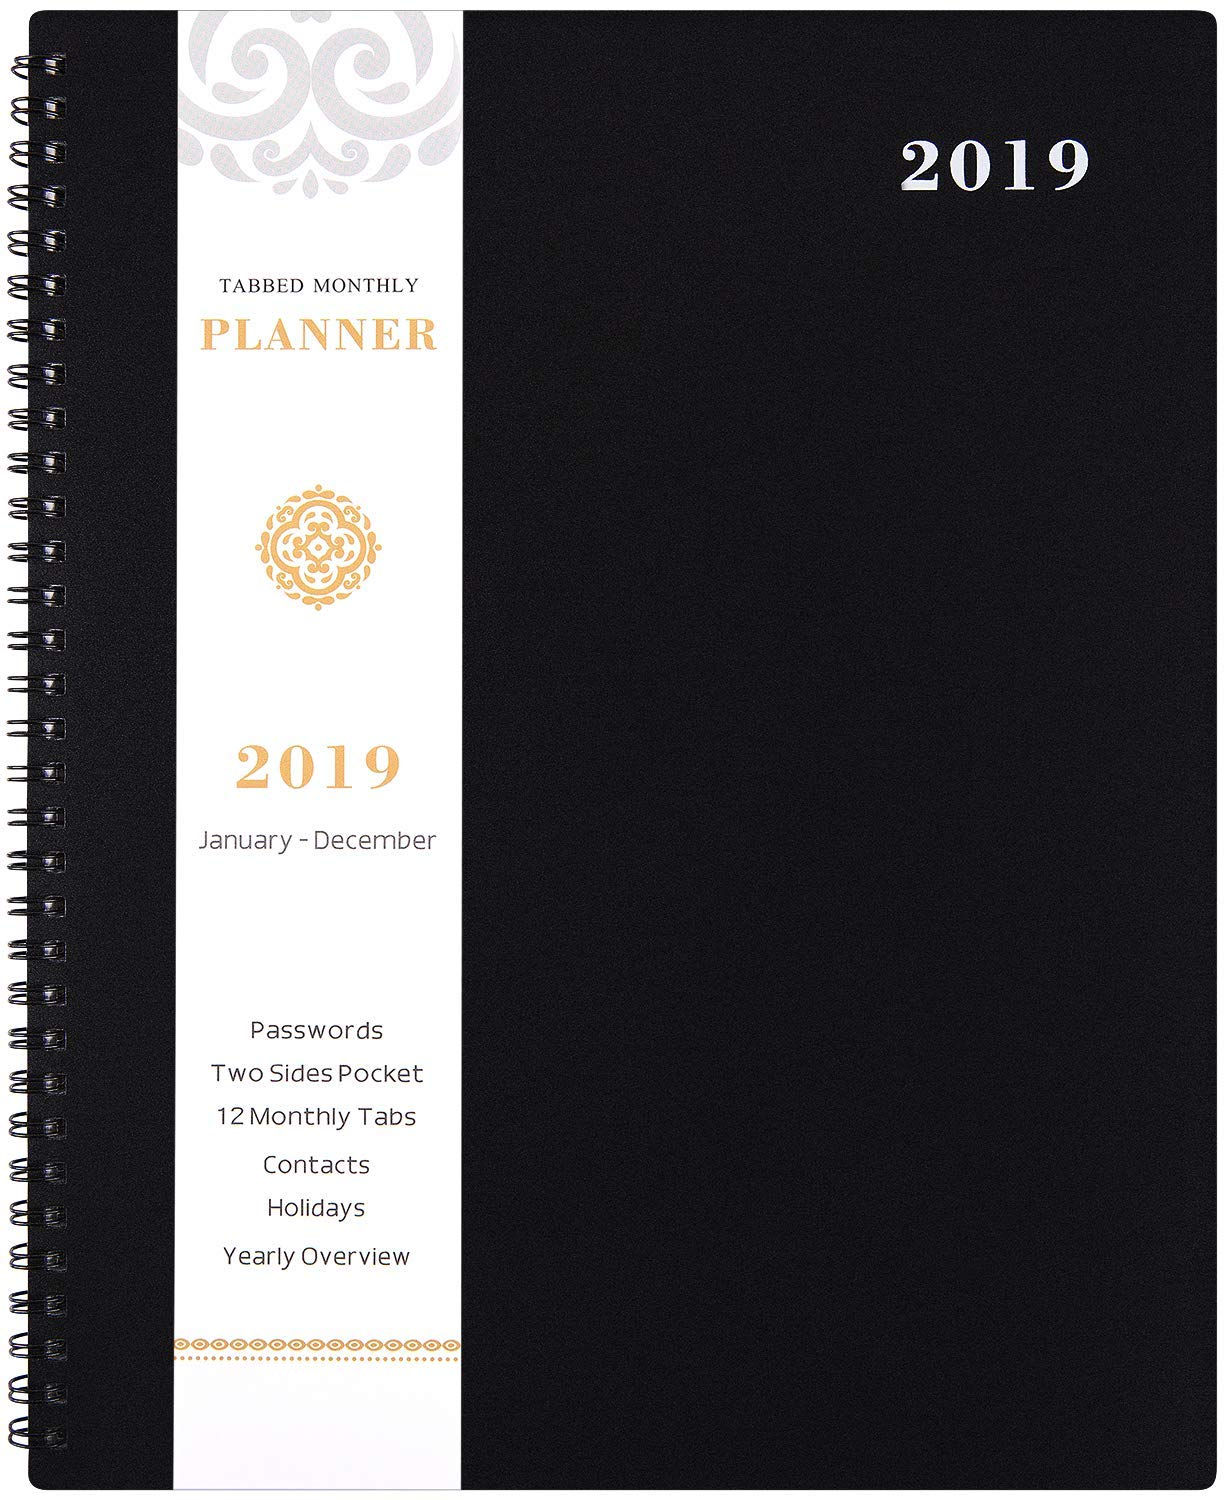 2019 Monthly Planner - 2019 Planner with TABS & Pocket & Label, Contacts and Passwords, Thick Paper, Twin-Wire Binding, 8.5'' x 11'' - Artfan